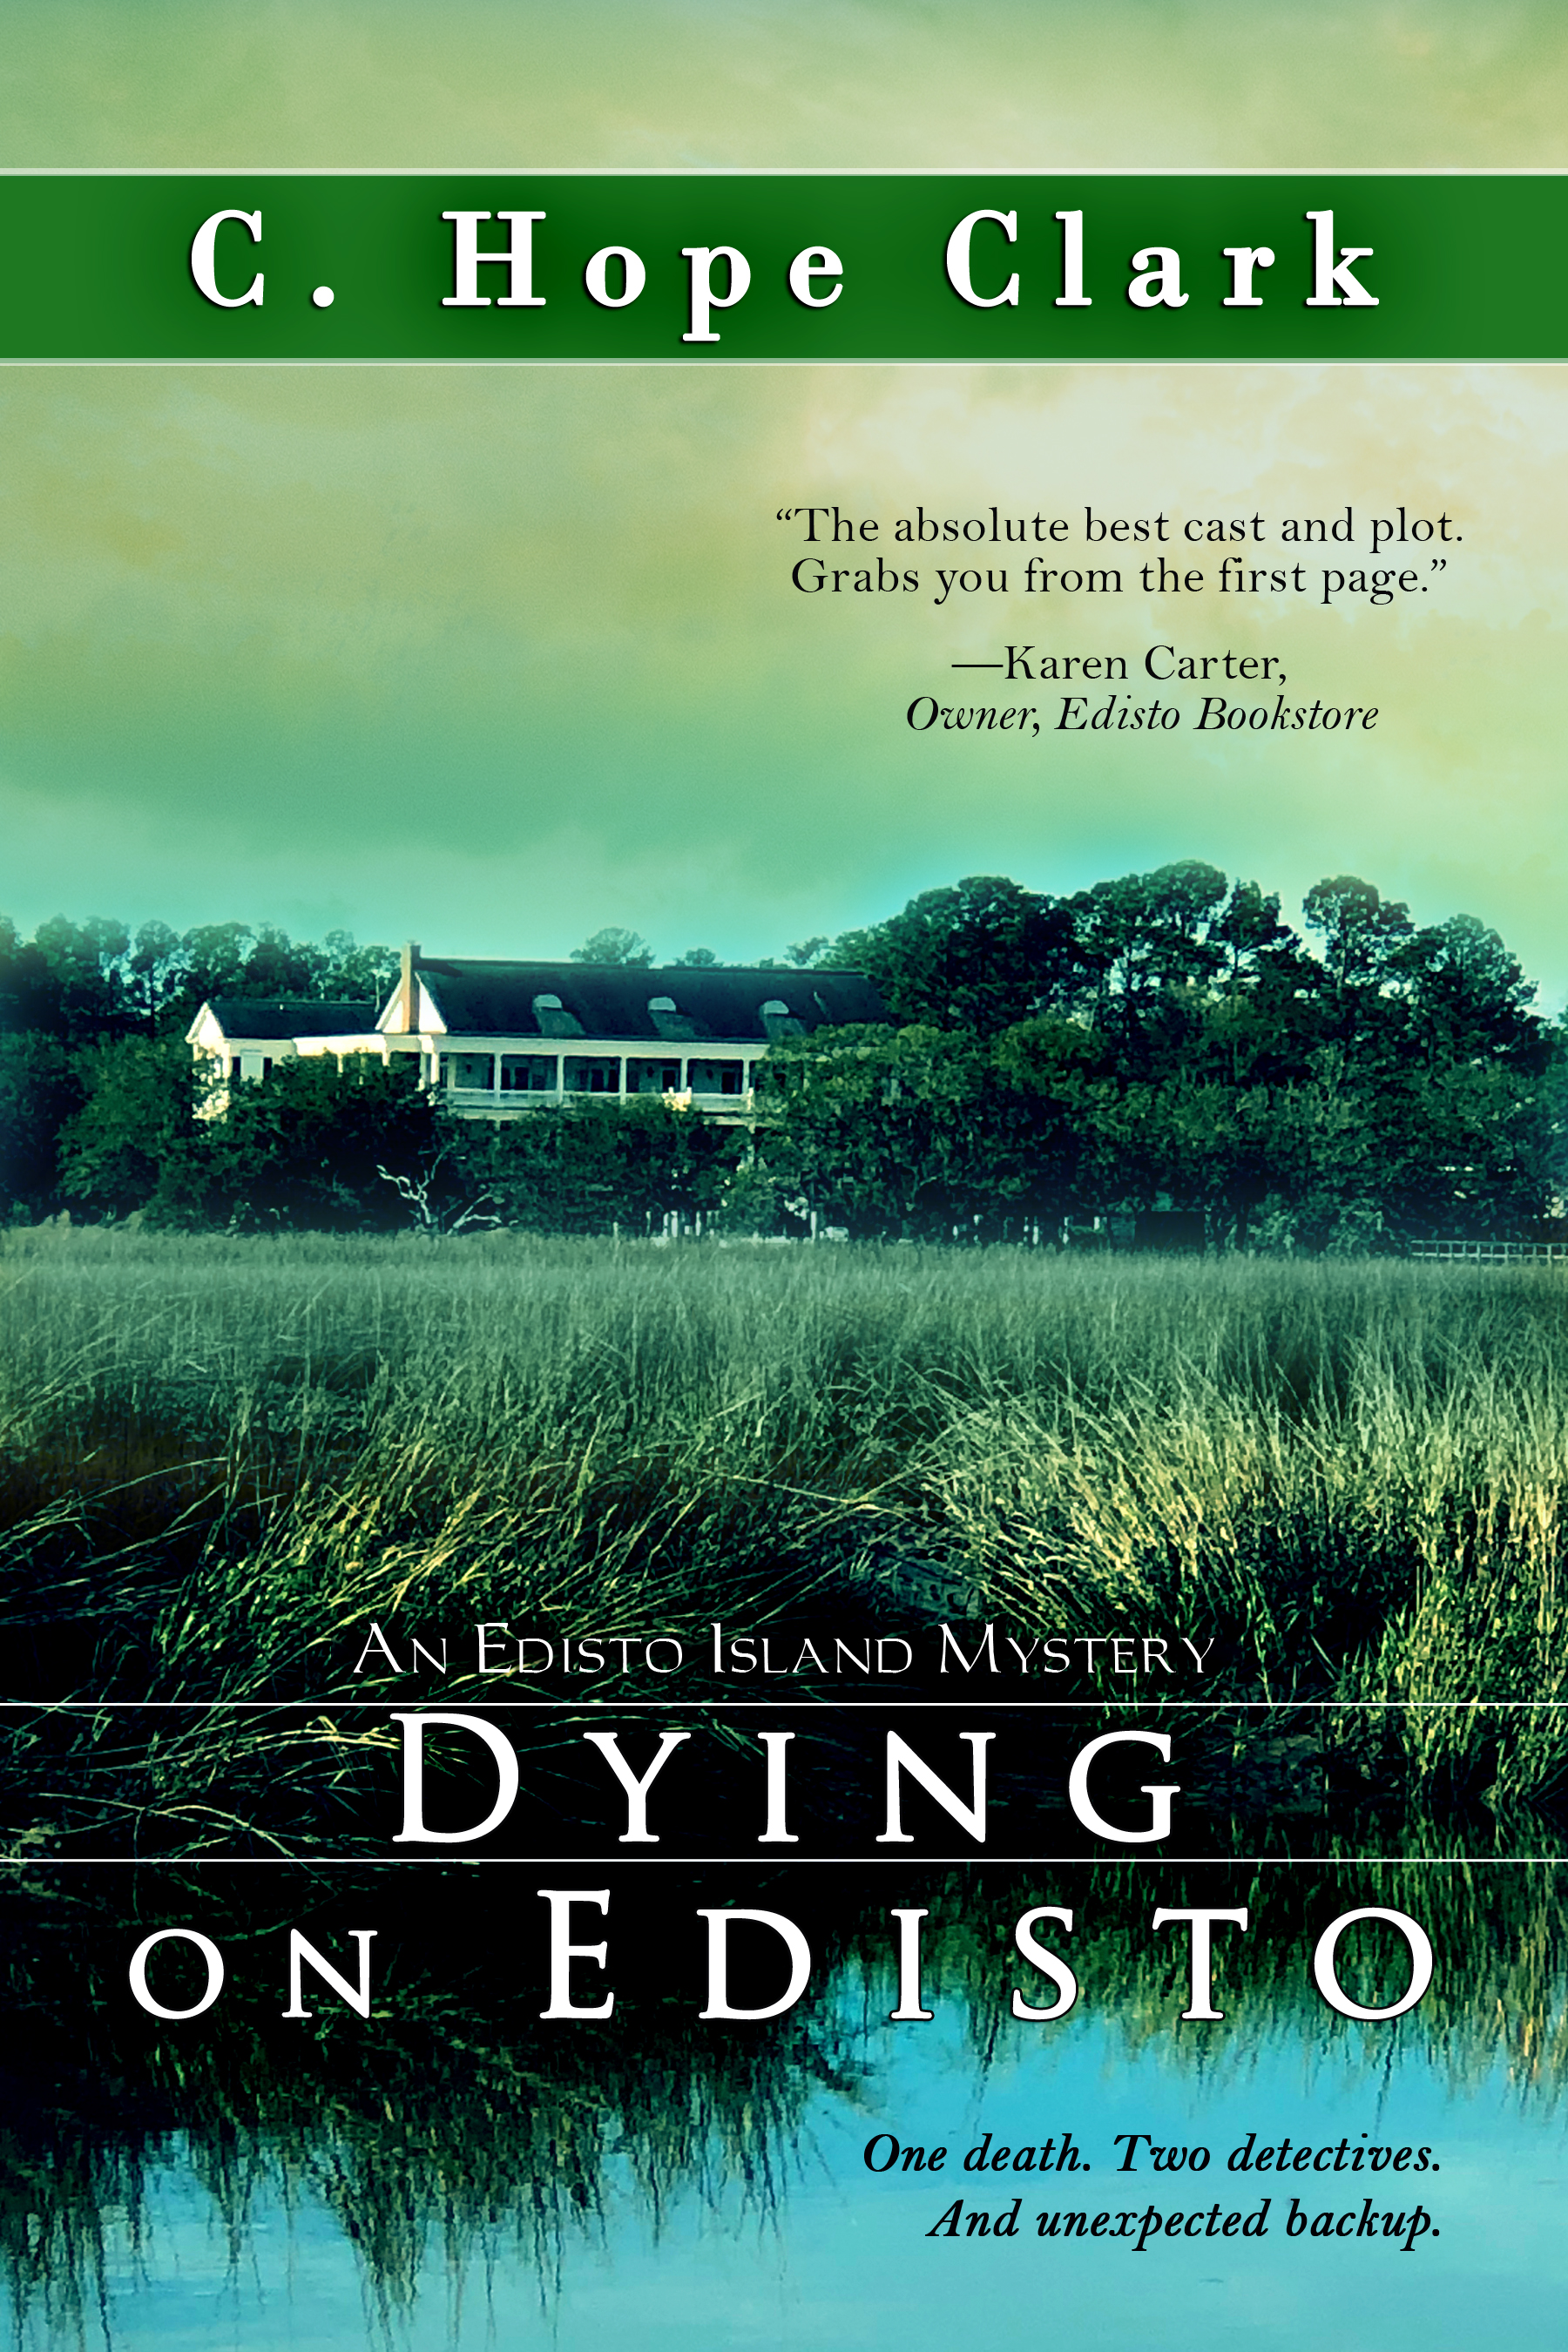 Dying on Edisto.jpg